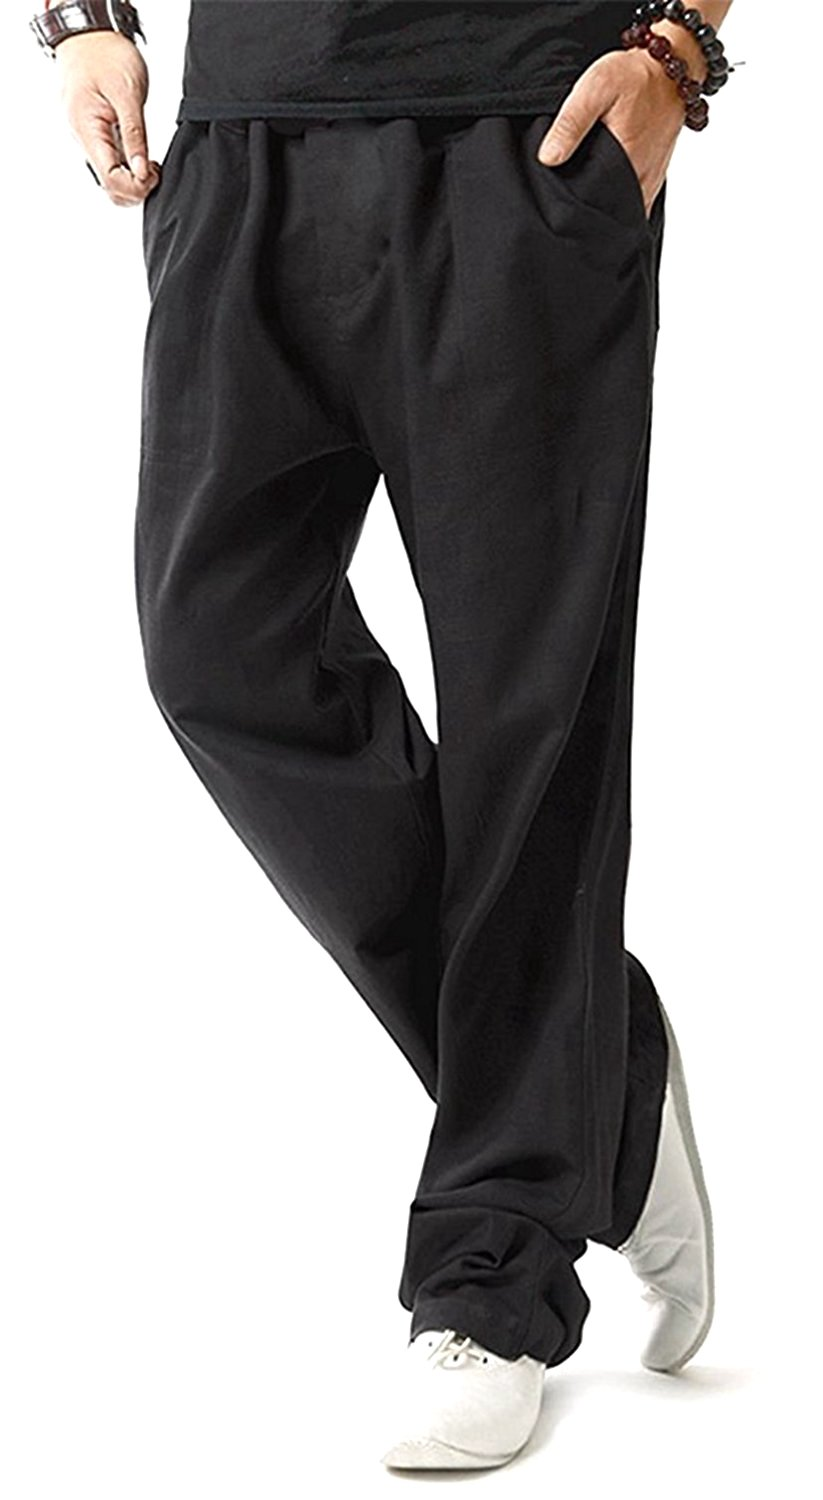 TBMPOY Men's Linen Casual Elastic Loose Fit Straight Pants Yoga Beach Summer Trousers(1 Black,us M)